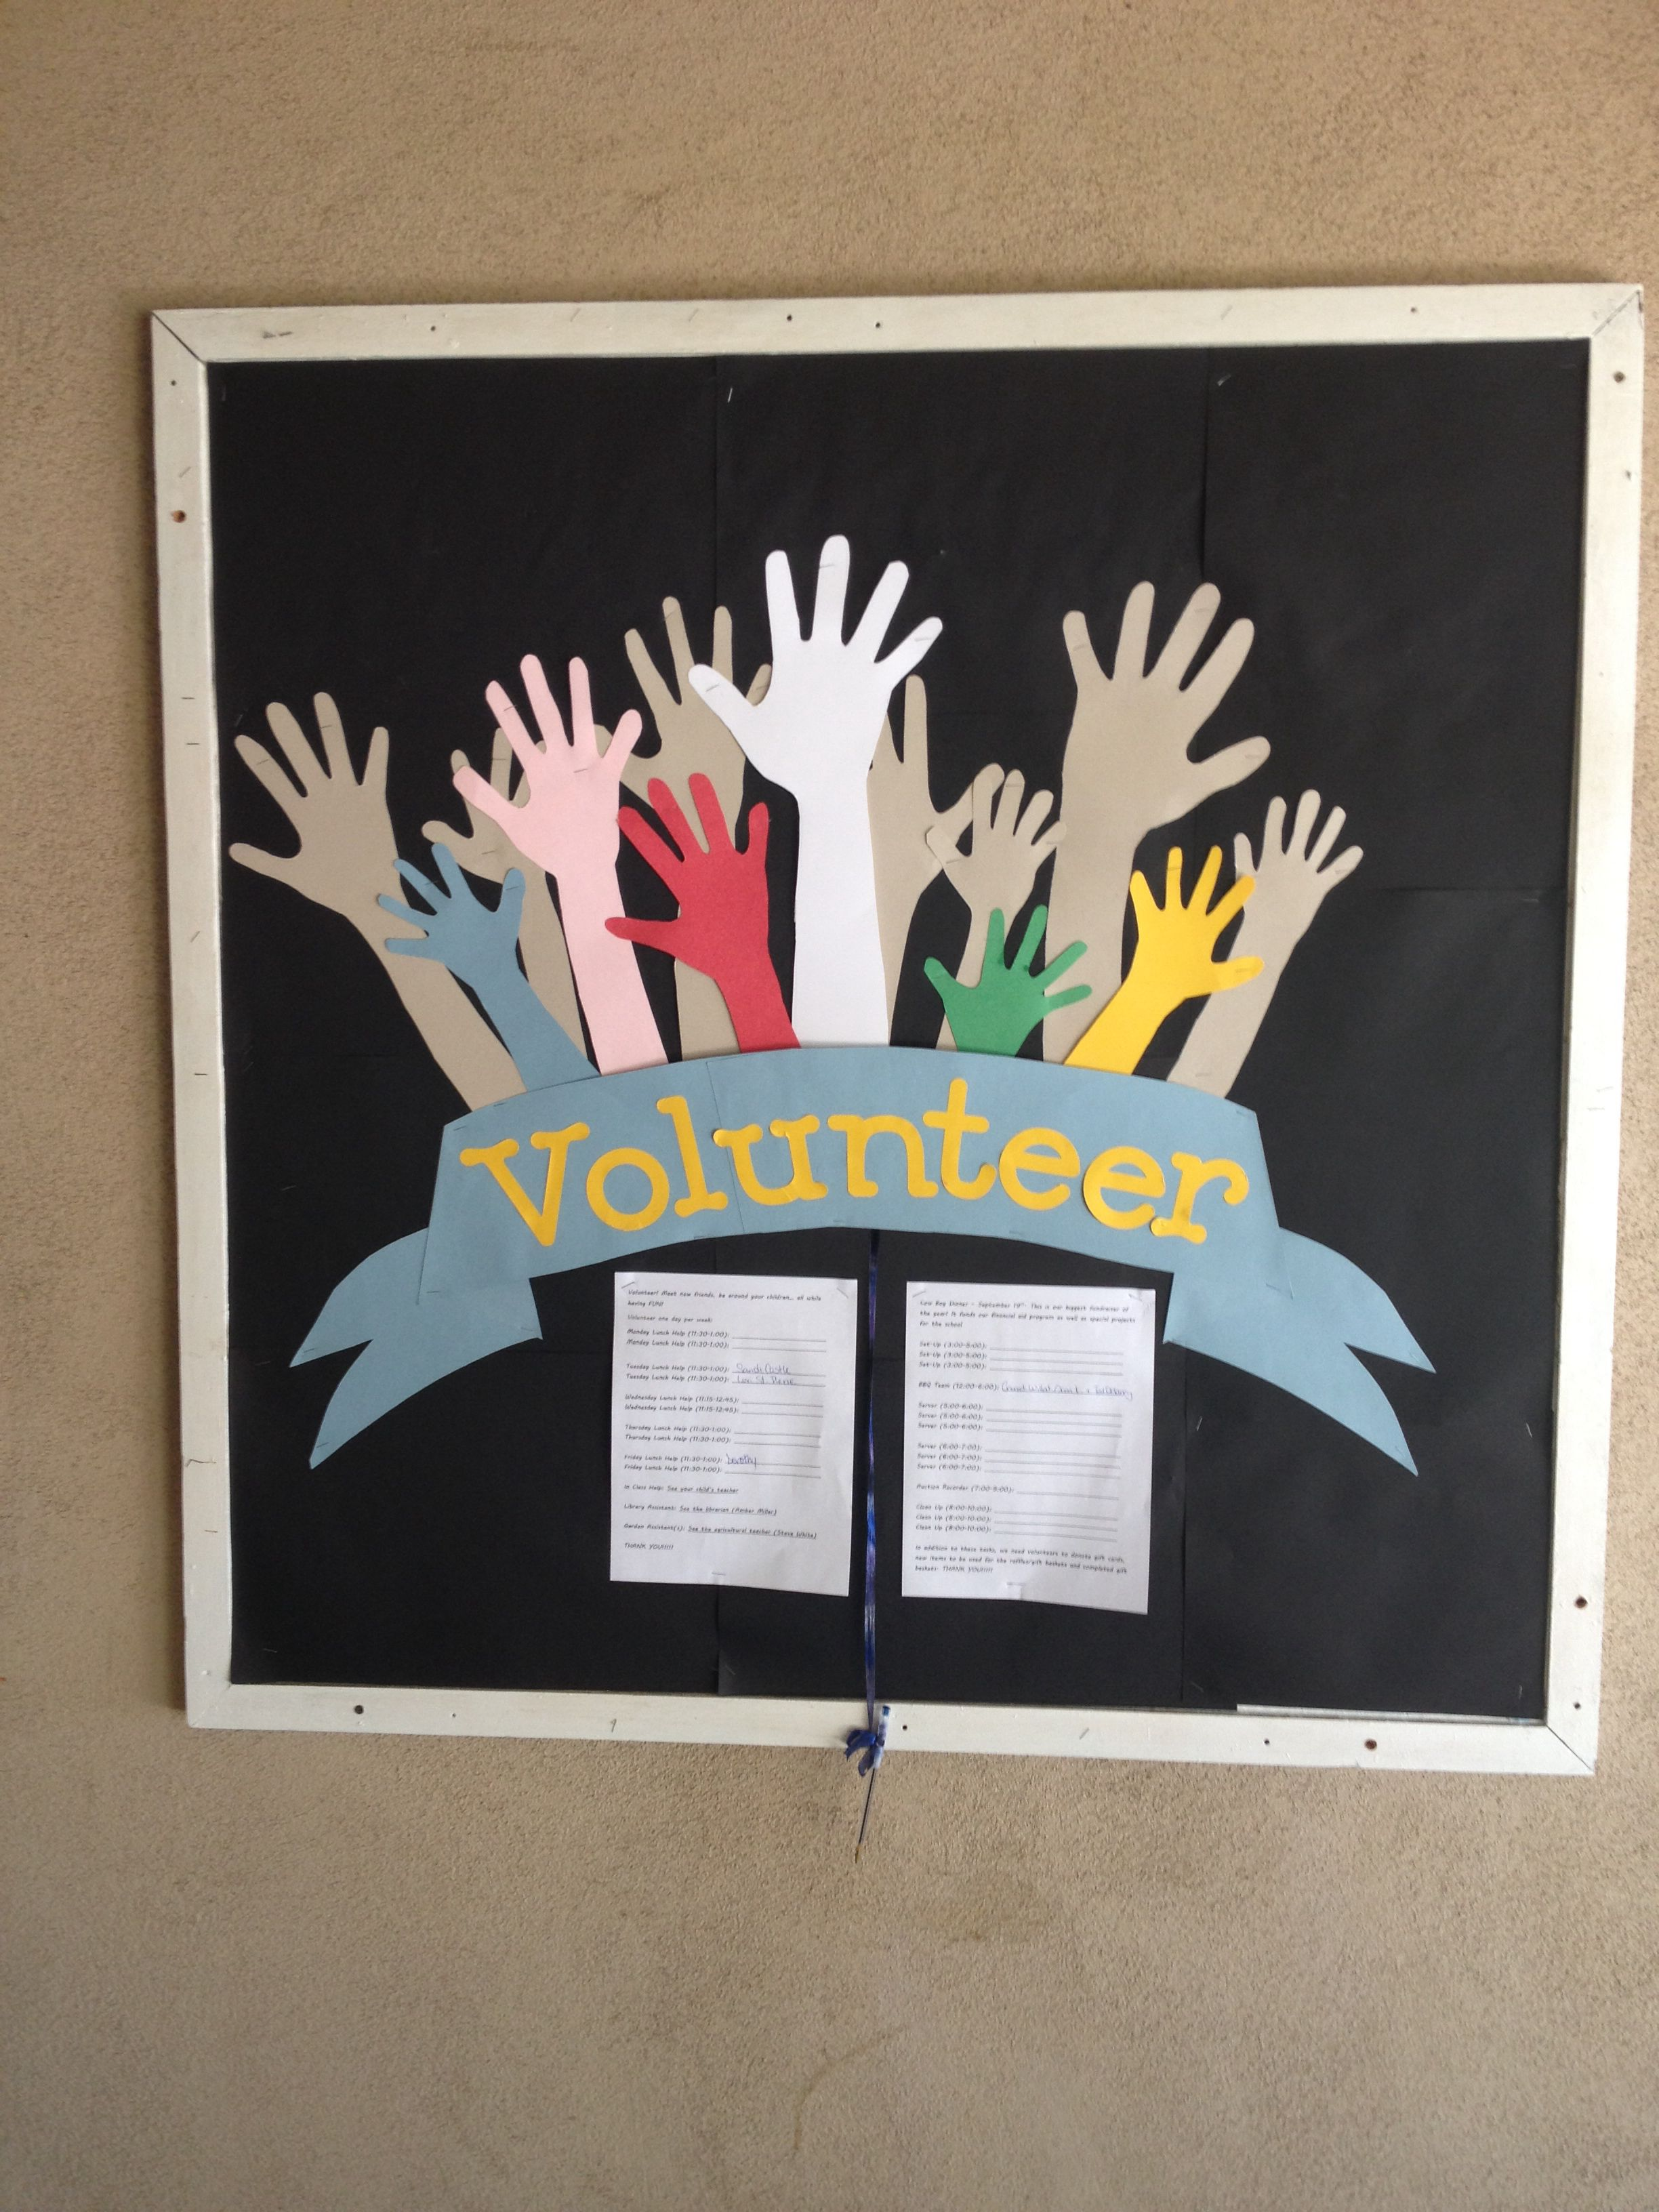 Youth Ministry Rooms: Volunteer Sign Up PTF (PTO) Bulletin Board For At School